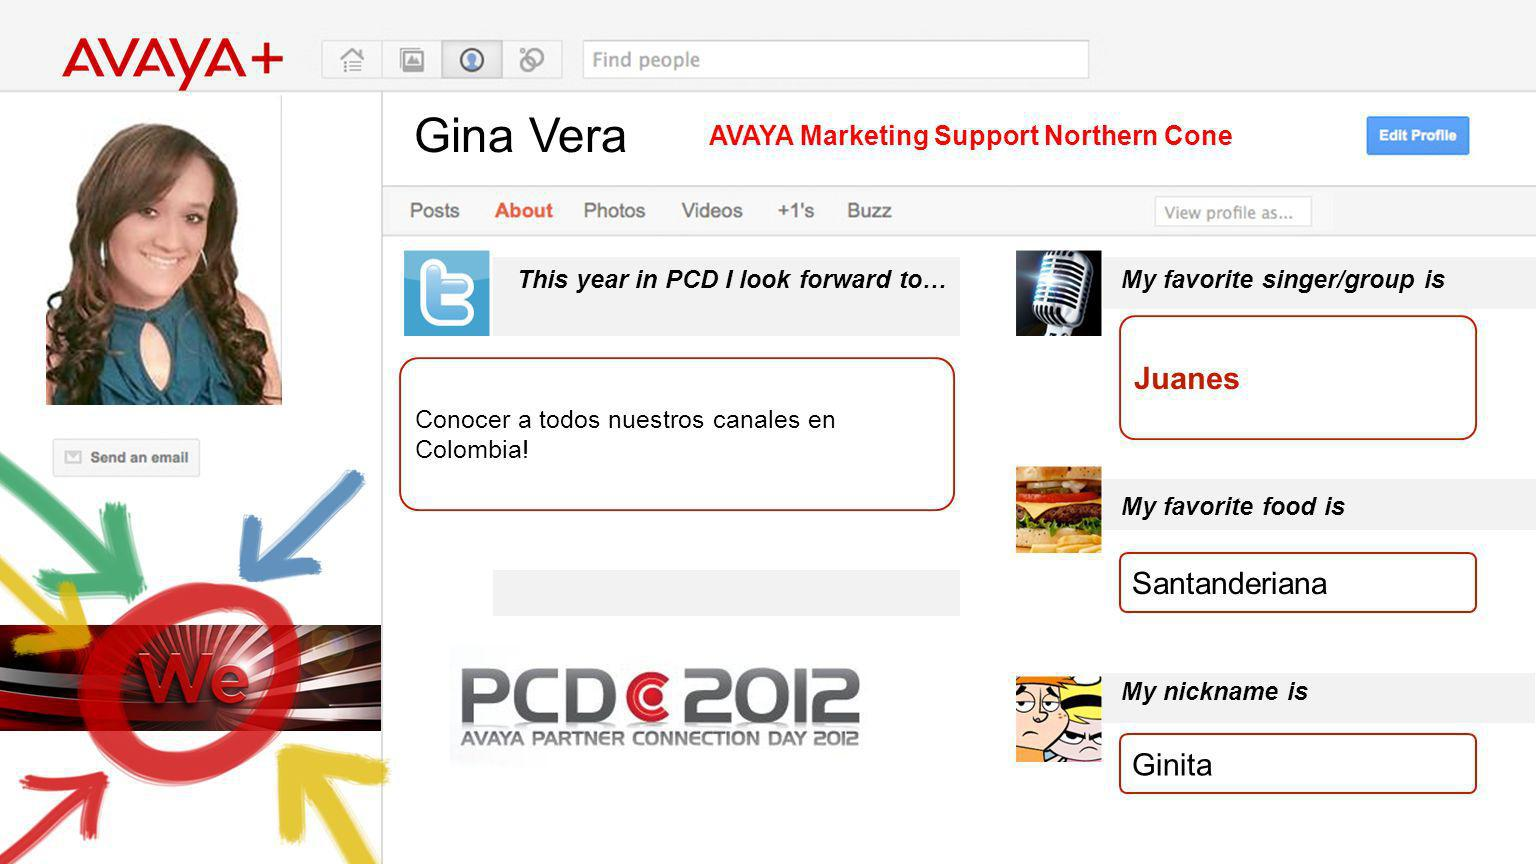 Gina Vera This year in PCD I look forward to… AVAYA Marketing Support Northern Cone Conocer a todos nuestros canales en Colombia.